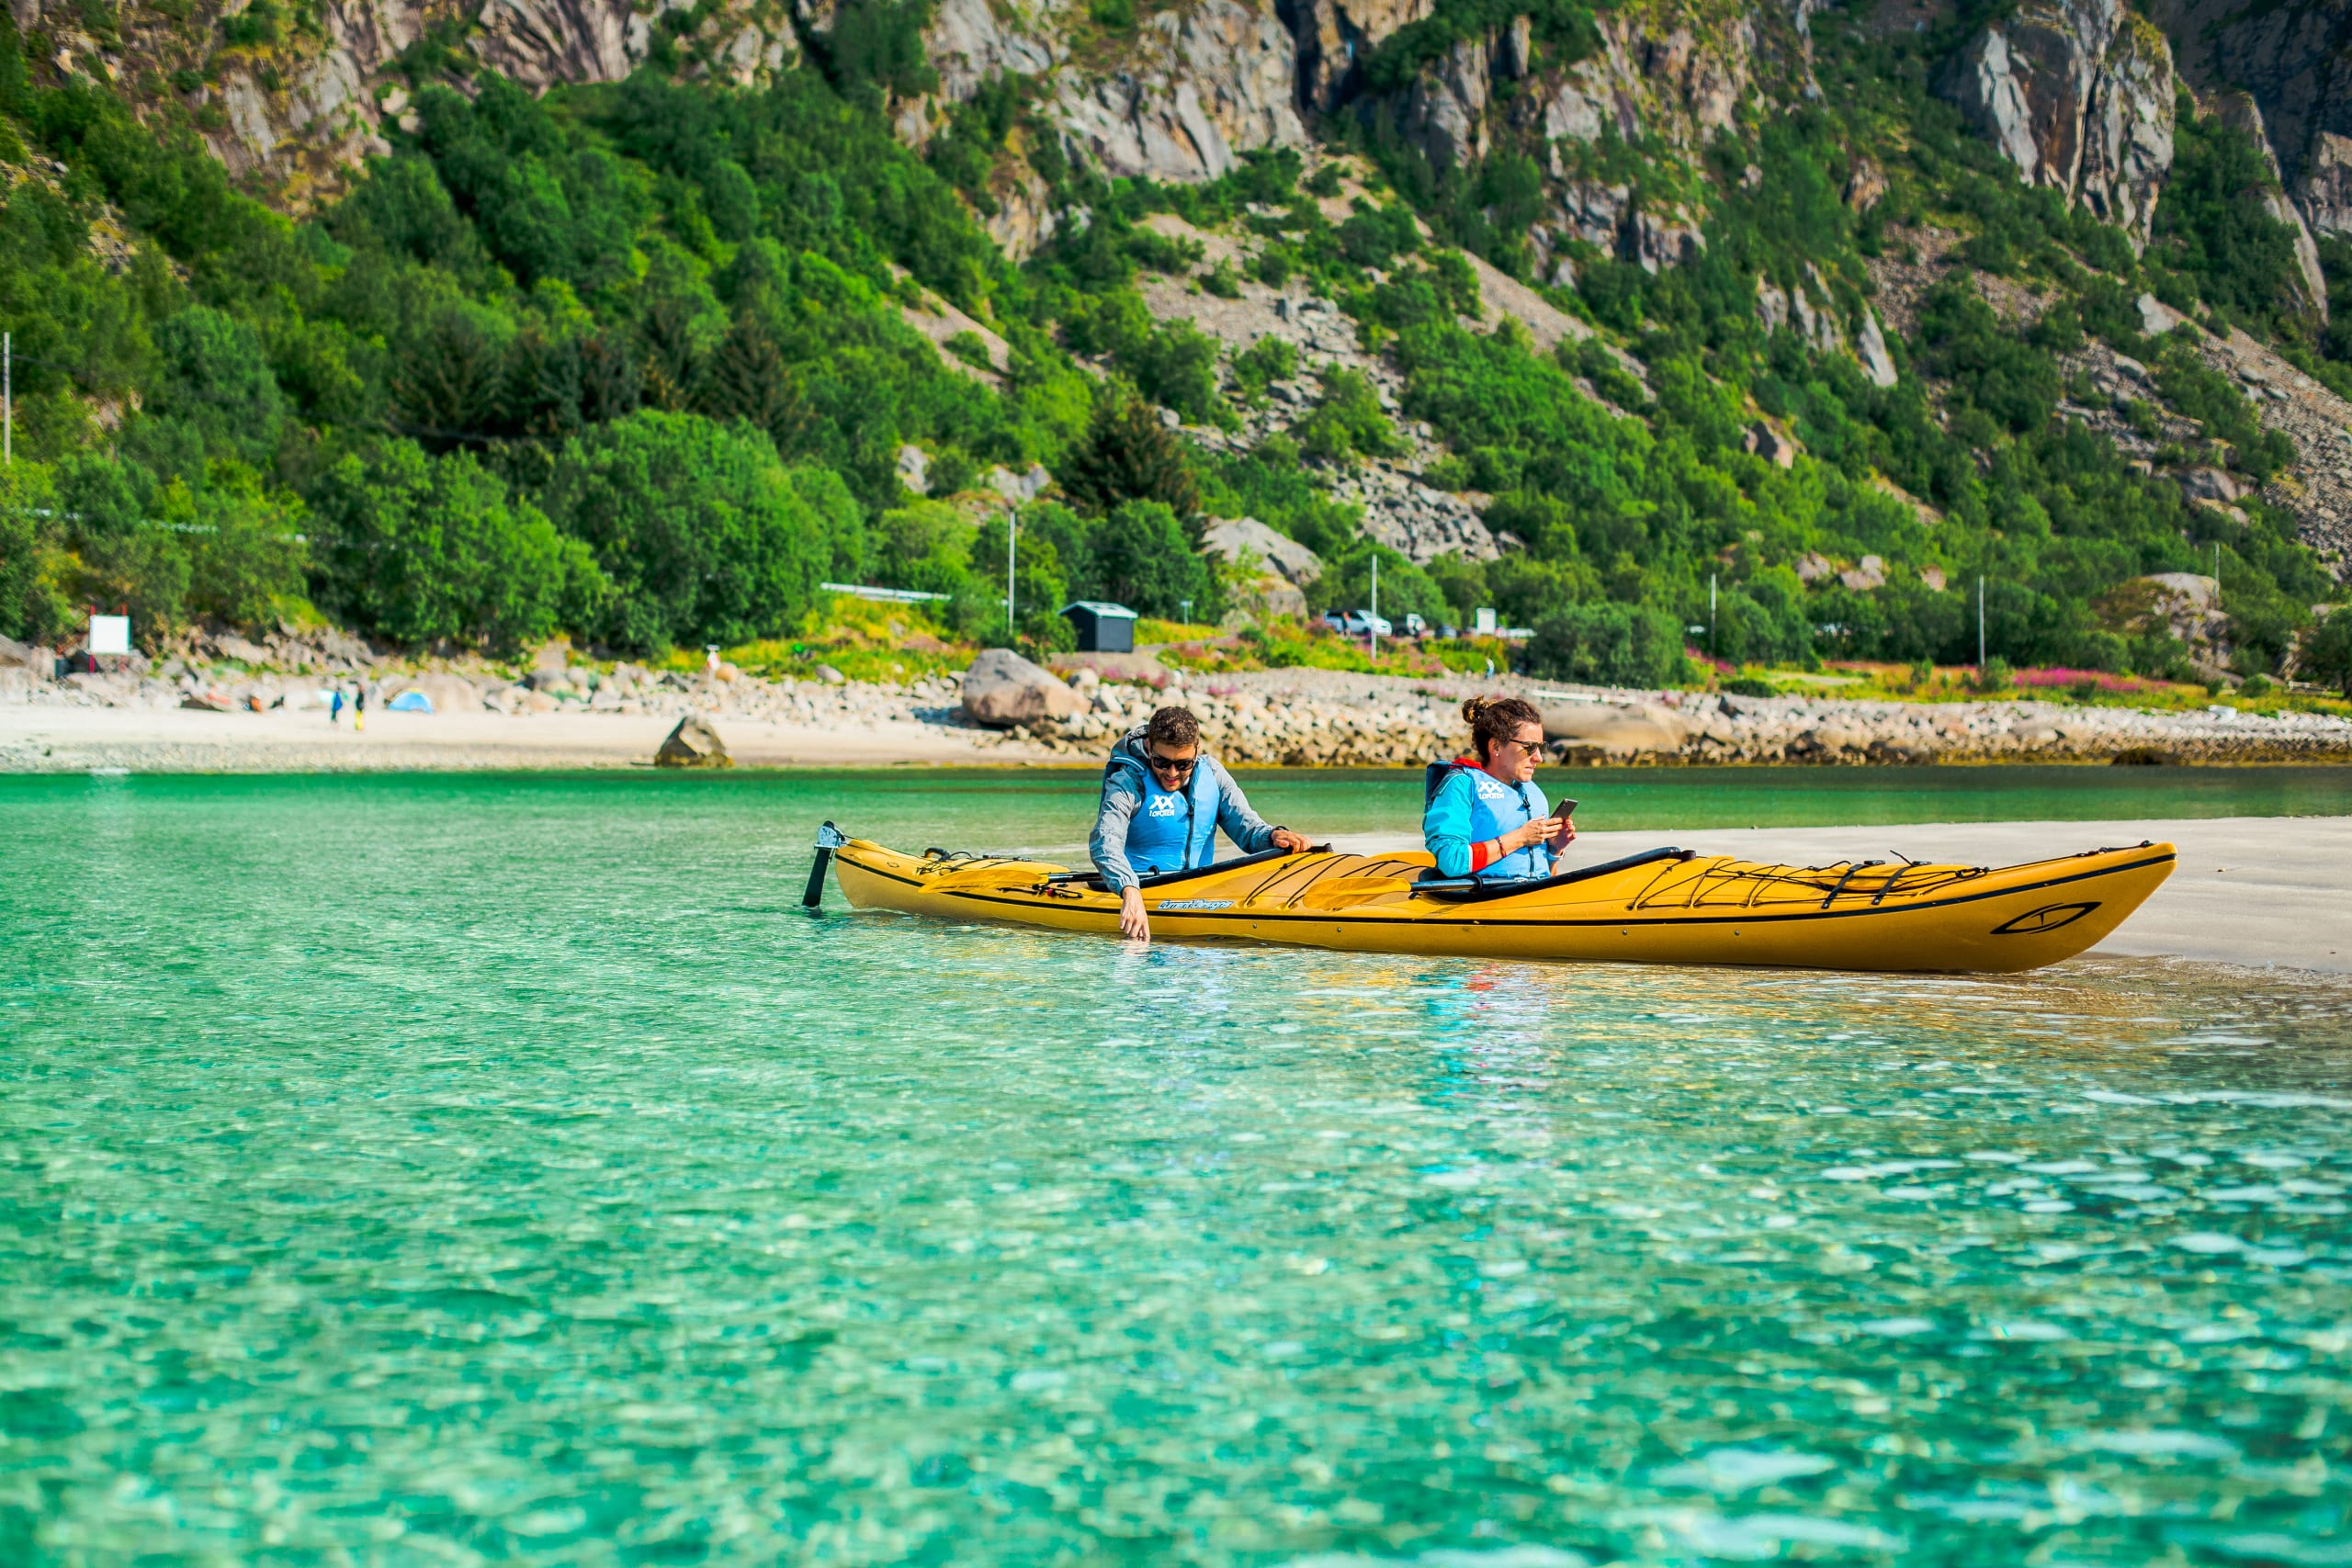 Kayaking in crystal clear water in Lofoten